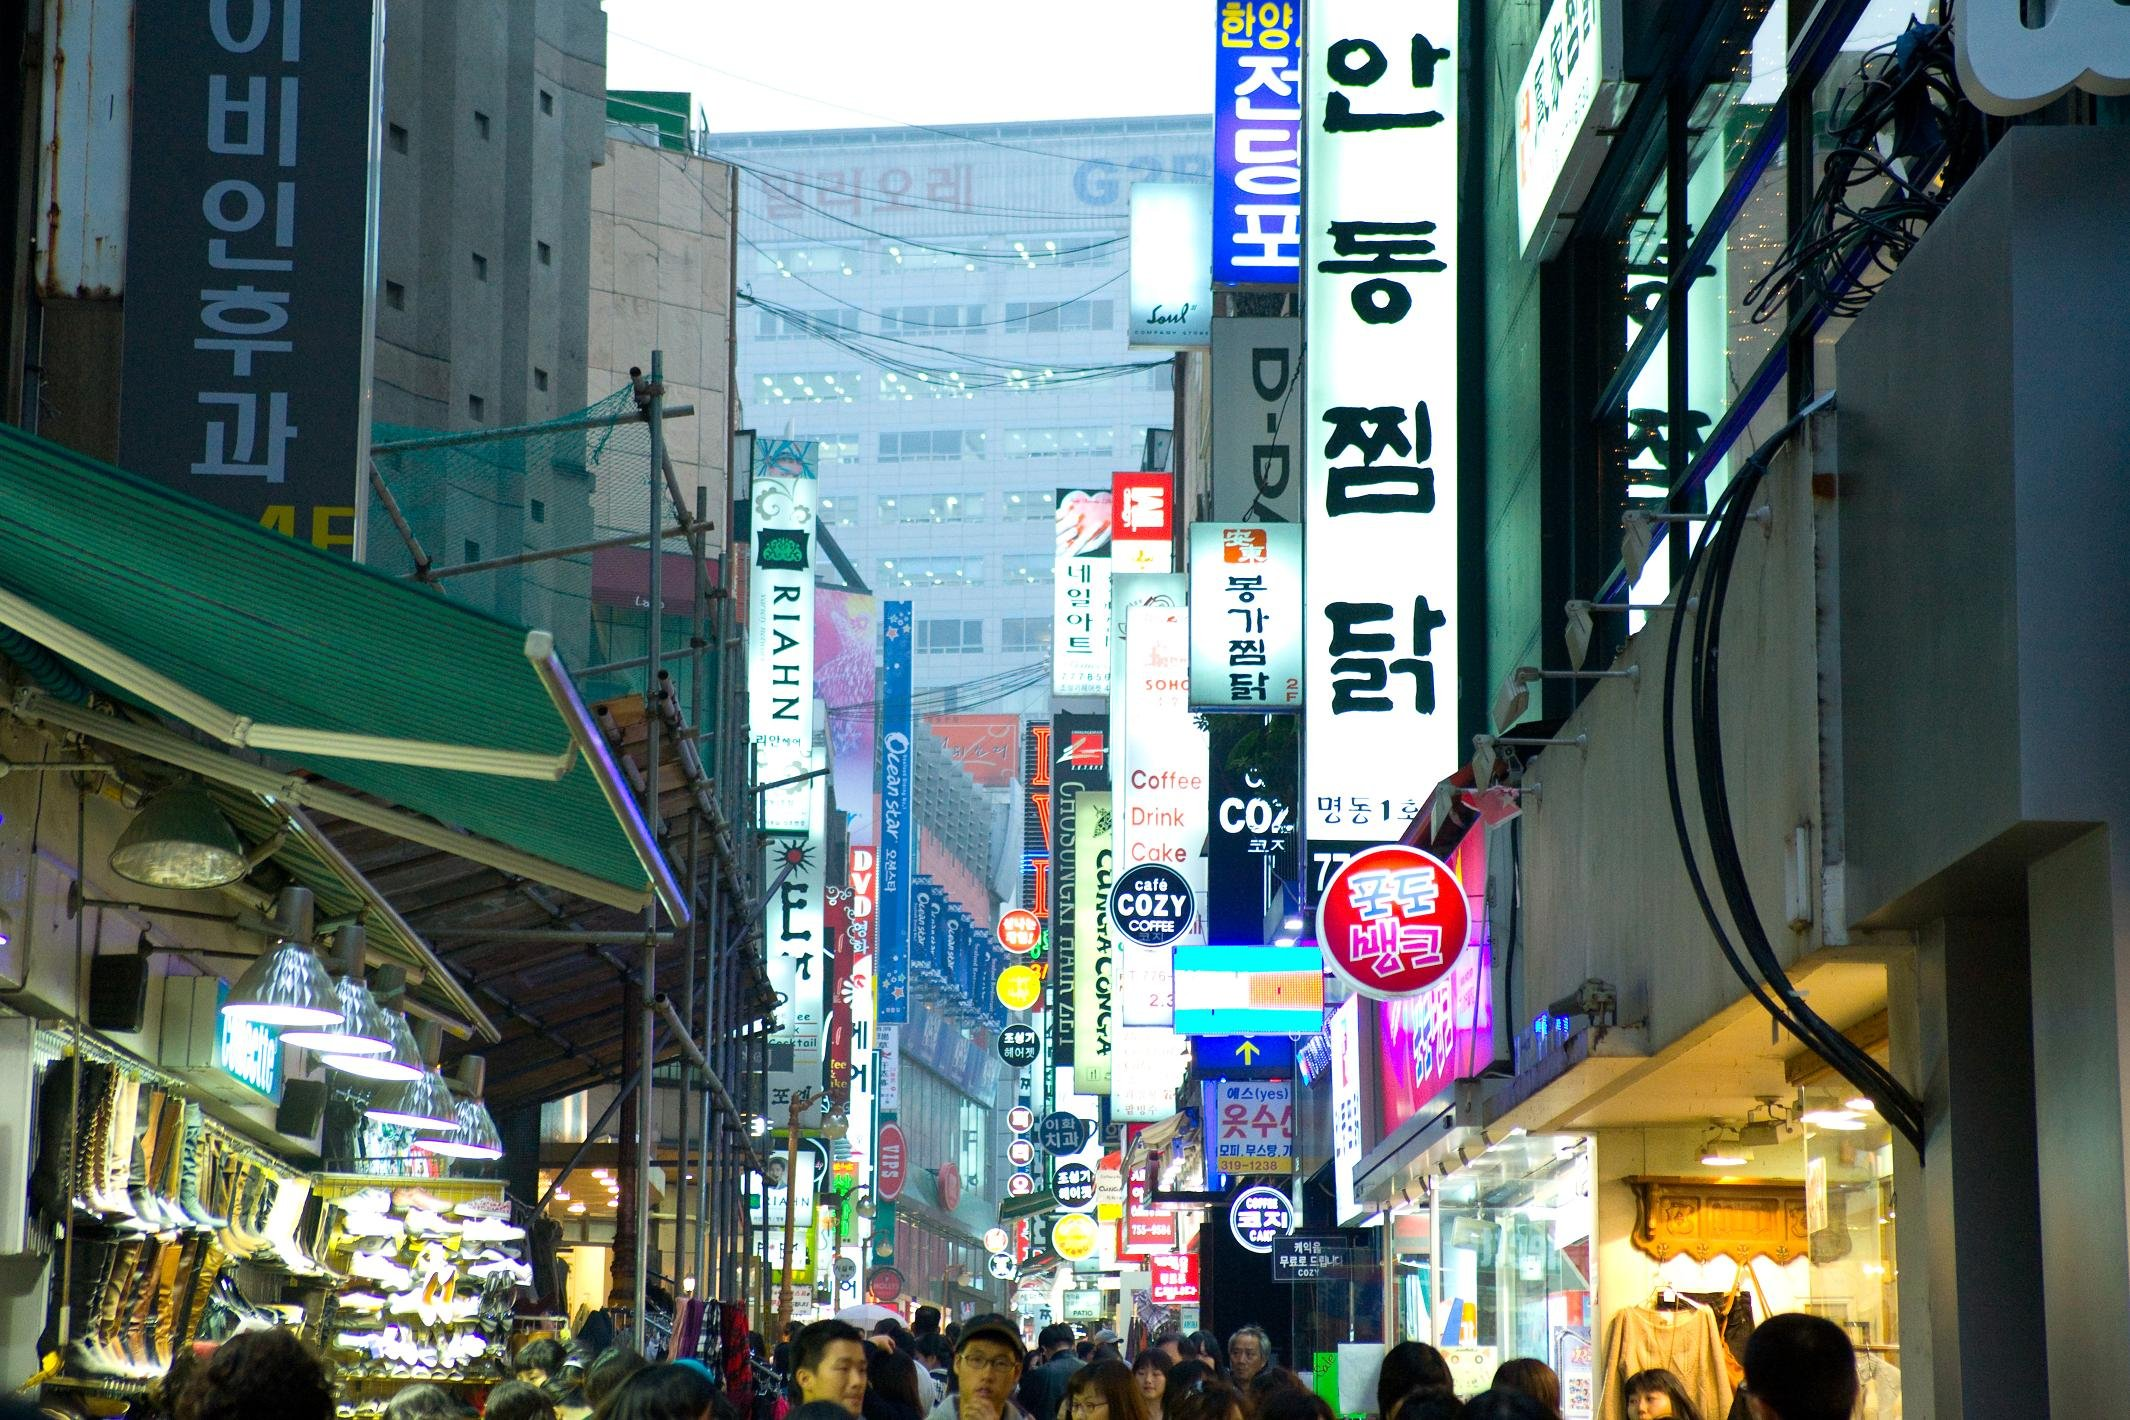 img 5a28d3c5285a3.png?resize=300,169 - 旅行前に調べておきたい「韓国の現状」の知識